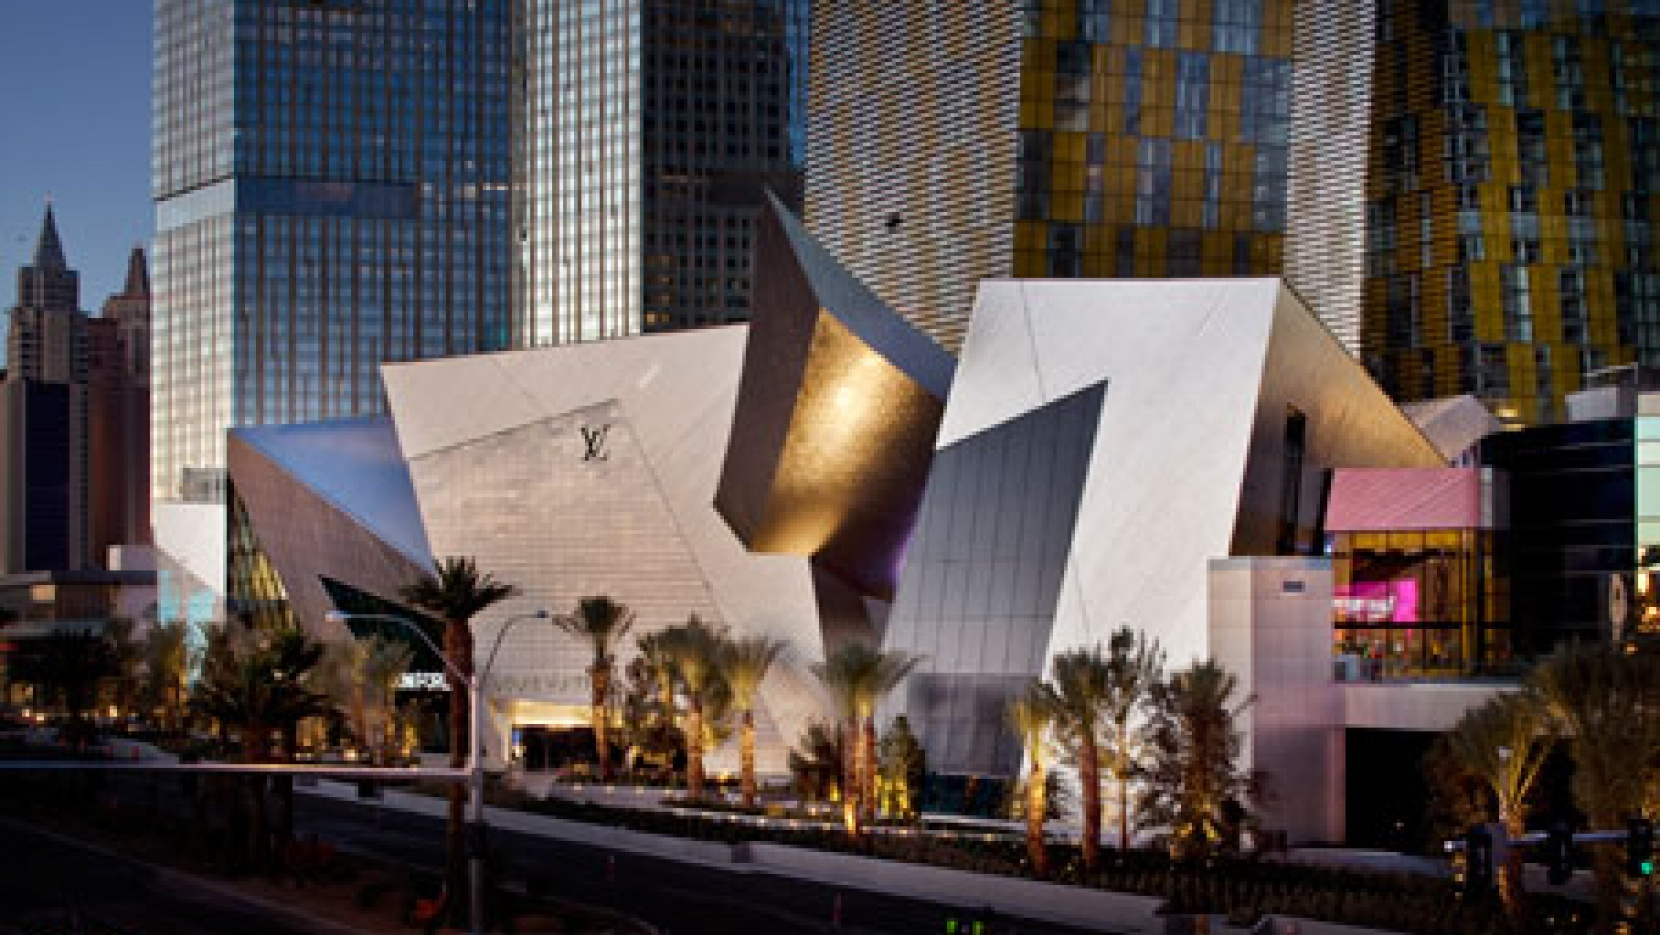 Crystals By Daniel Libeskind For Mgm Mirage City Center